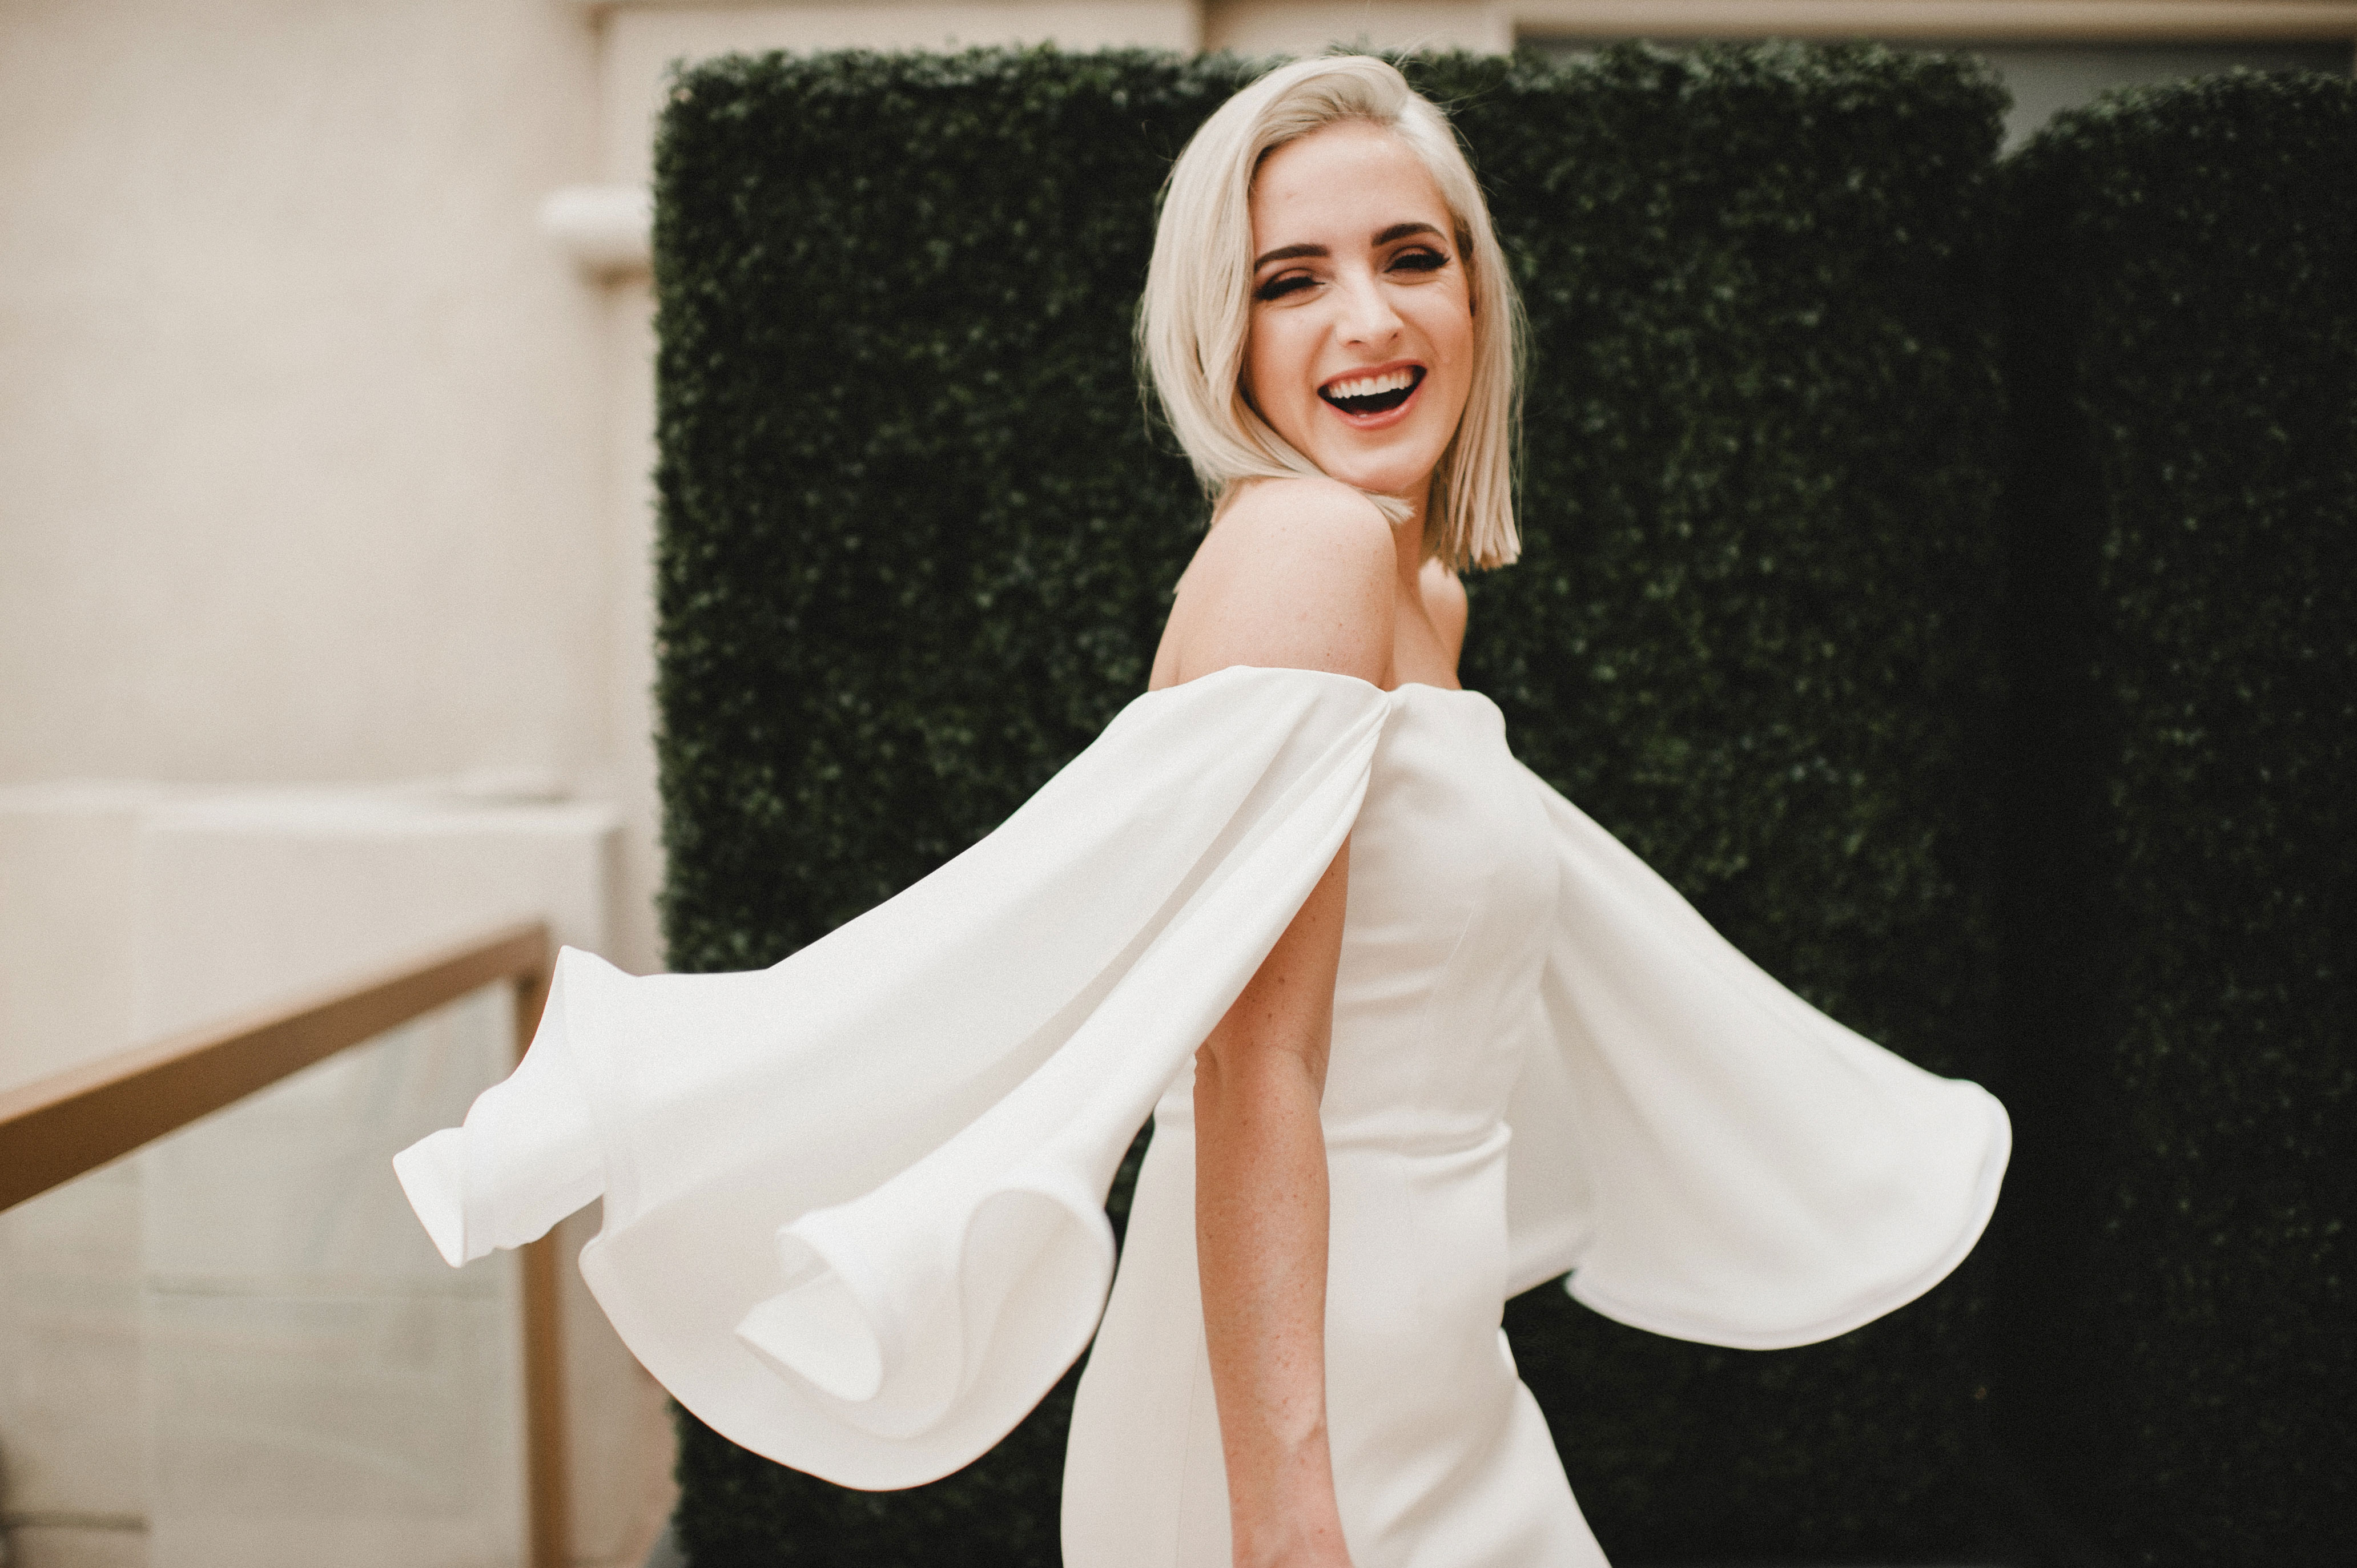 off the shoulder wedding dresses carina skrobecki